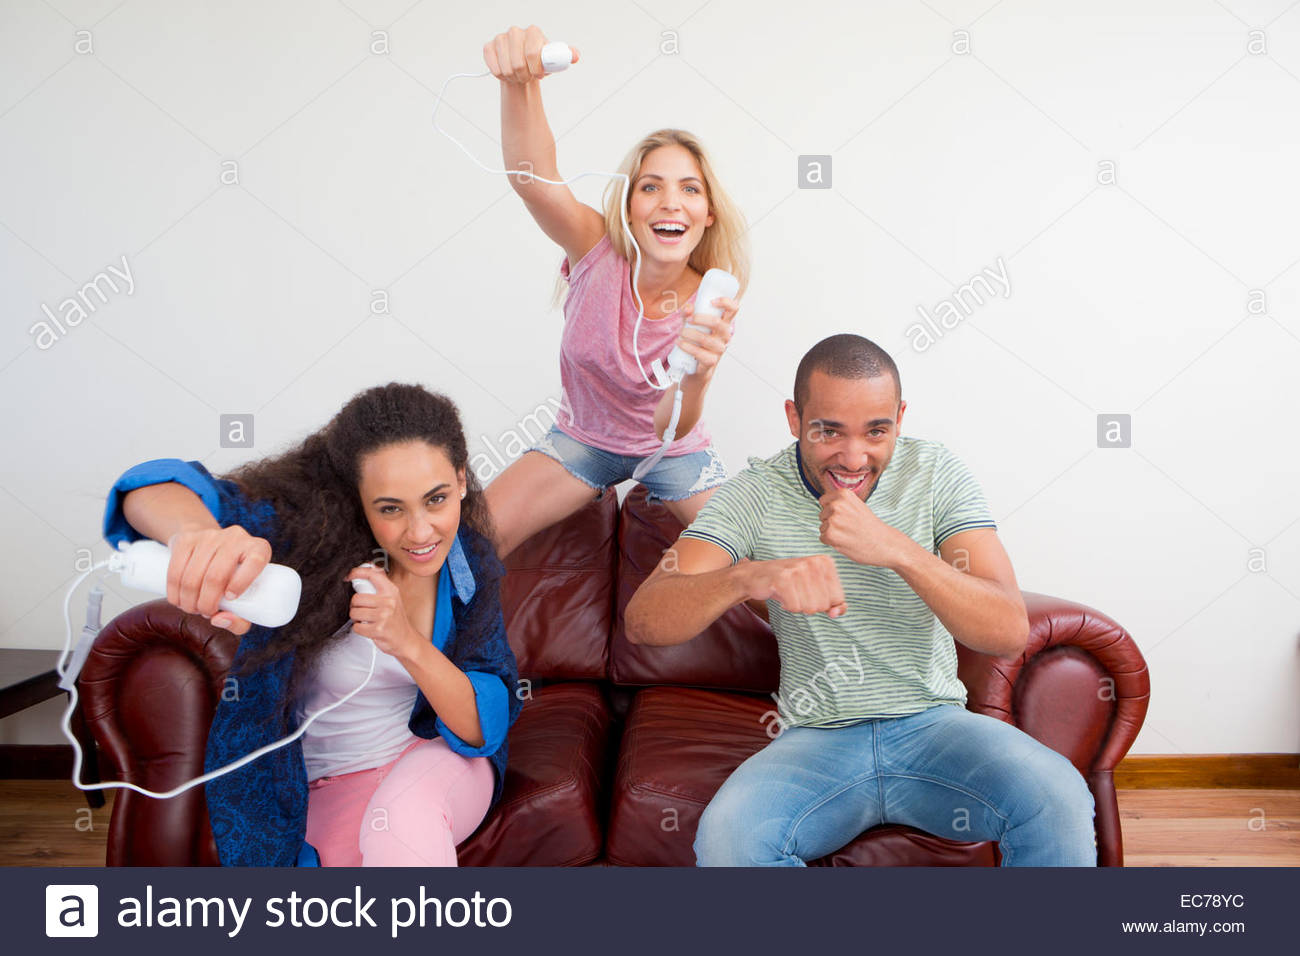 Three friends playing video game on sofa - Stock Image